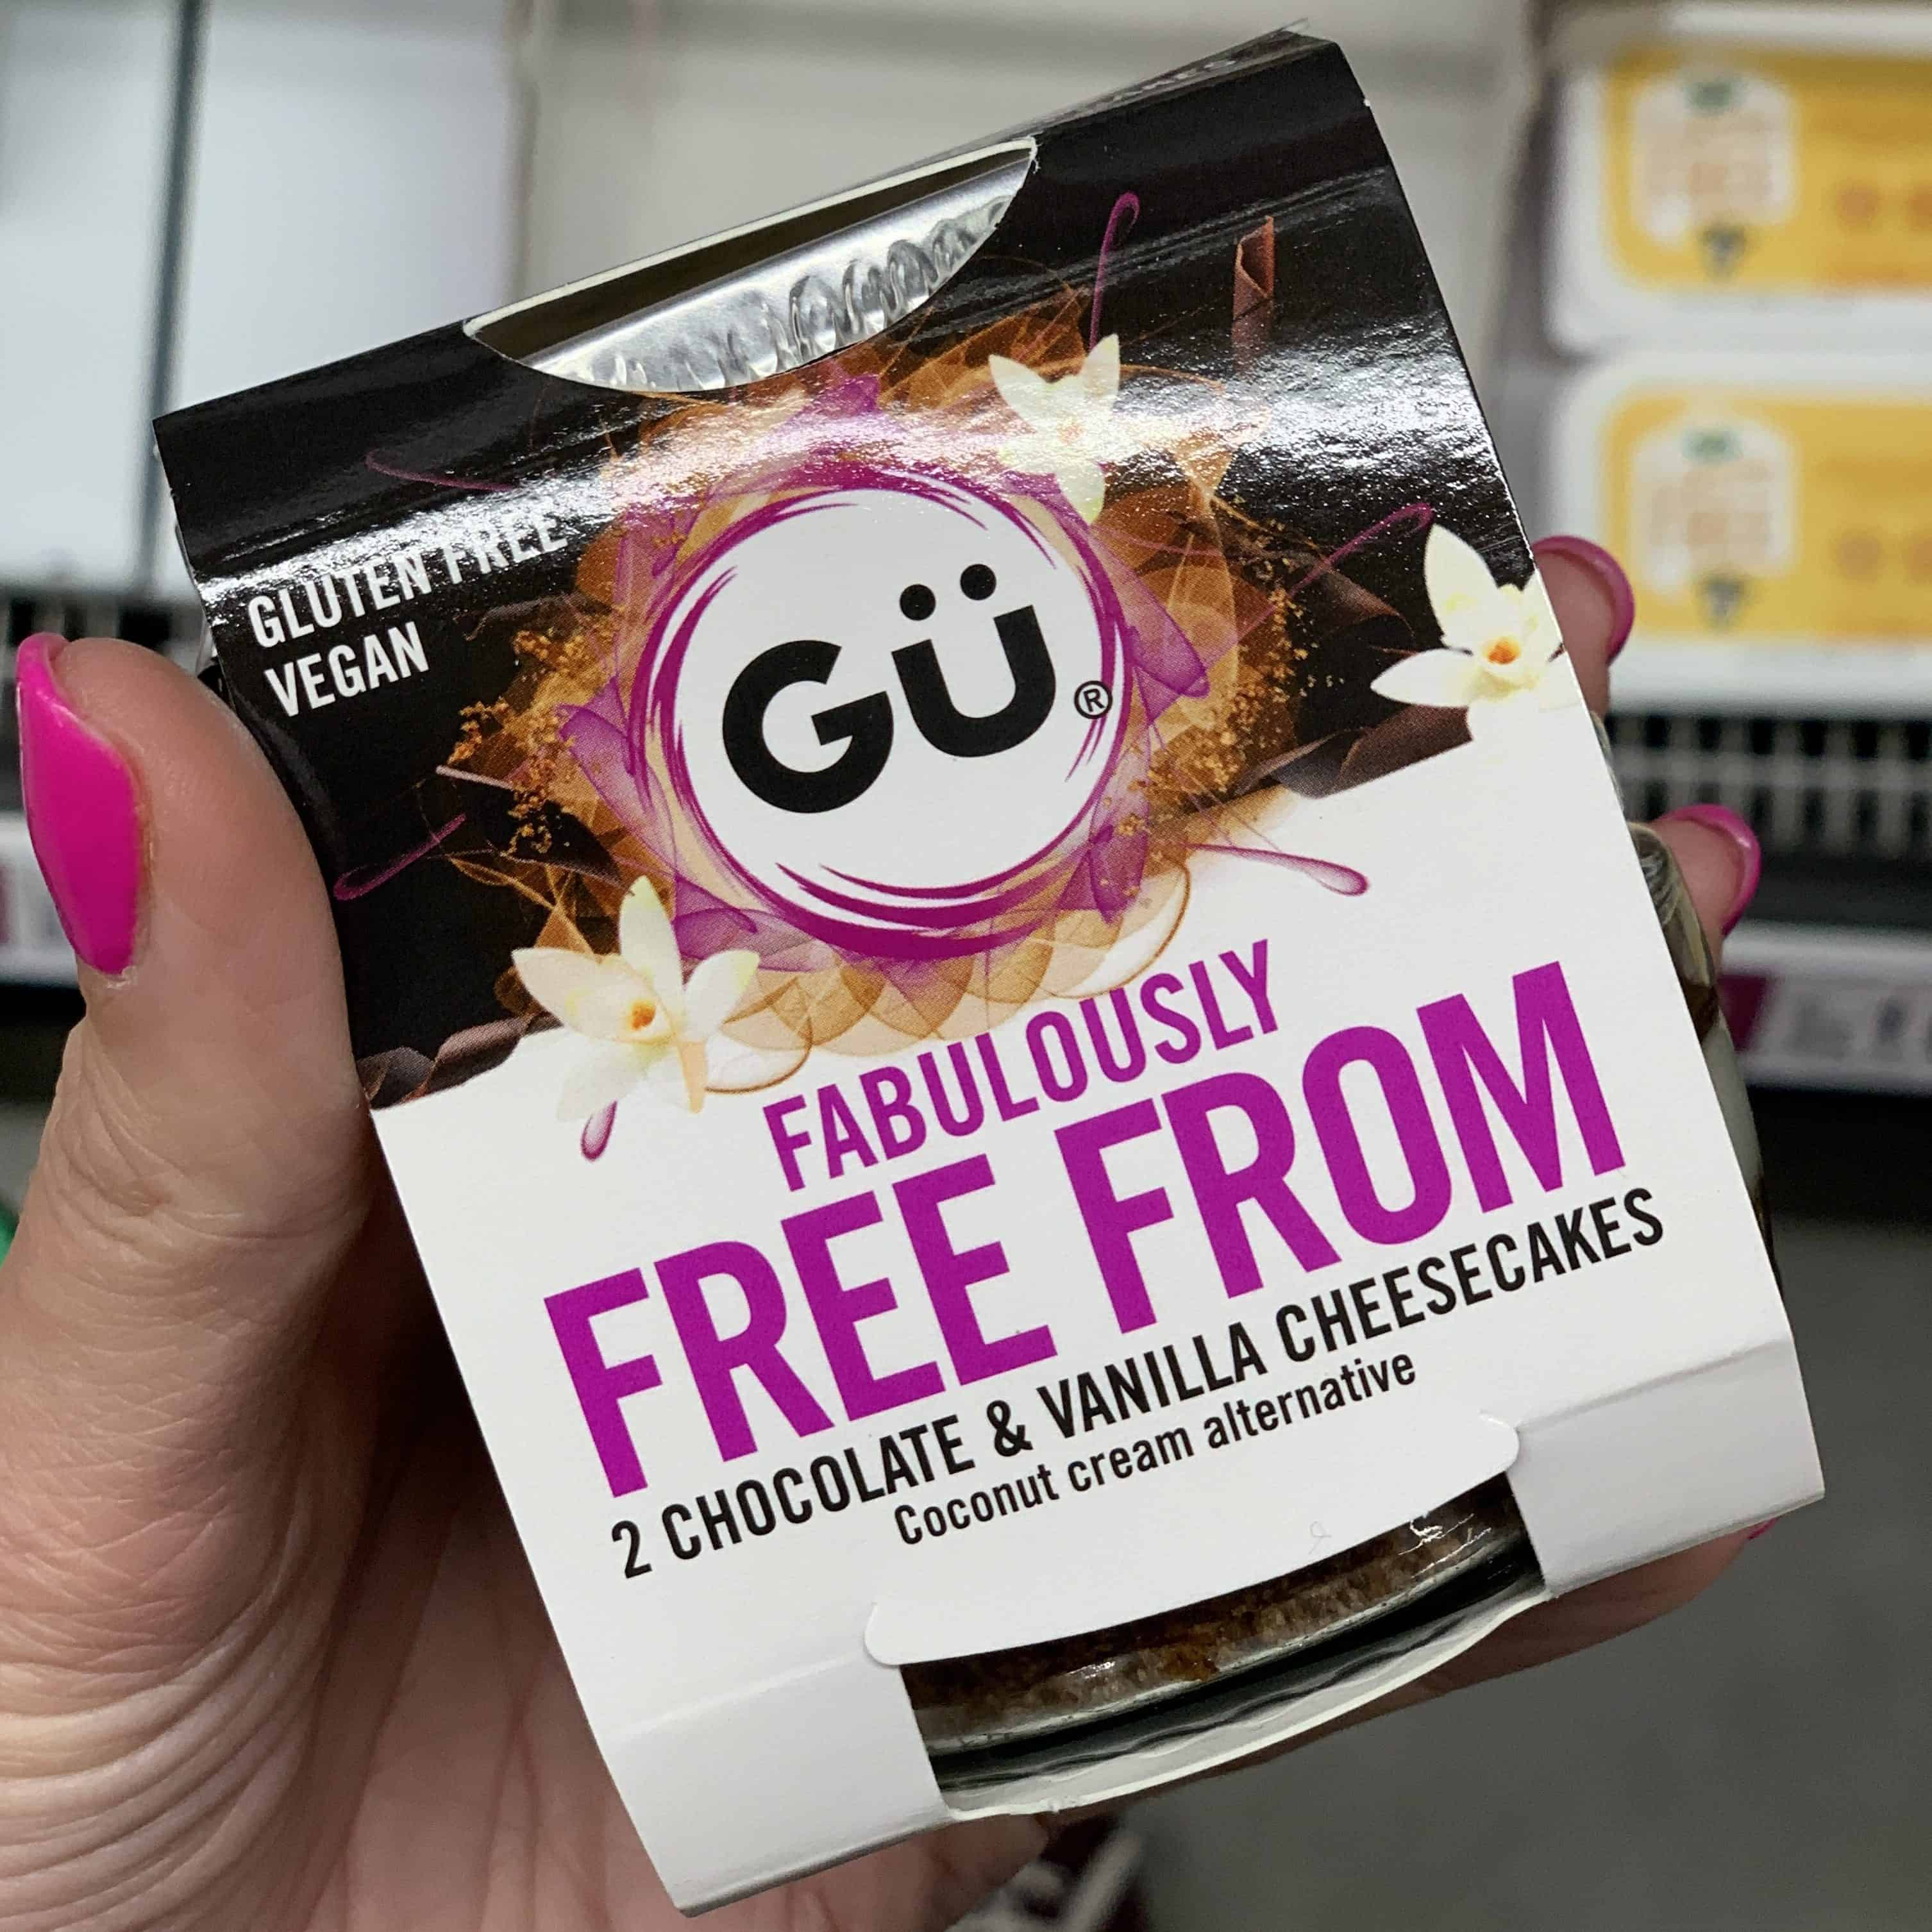 gluten free finds april 2019 uk 3